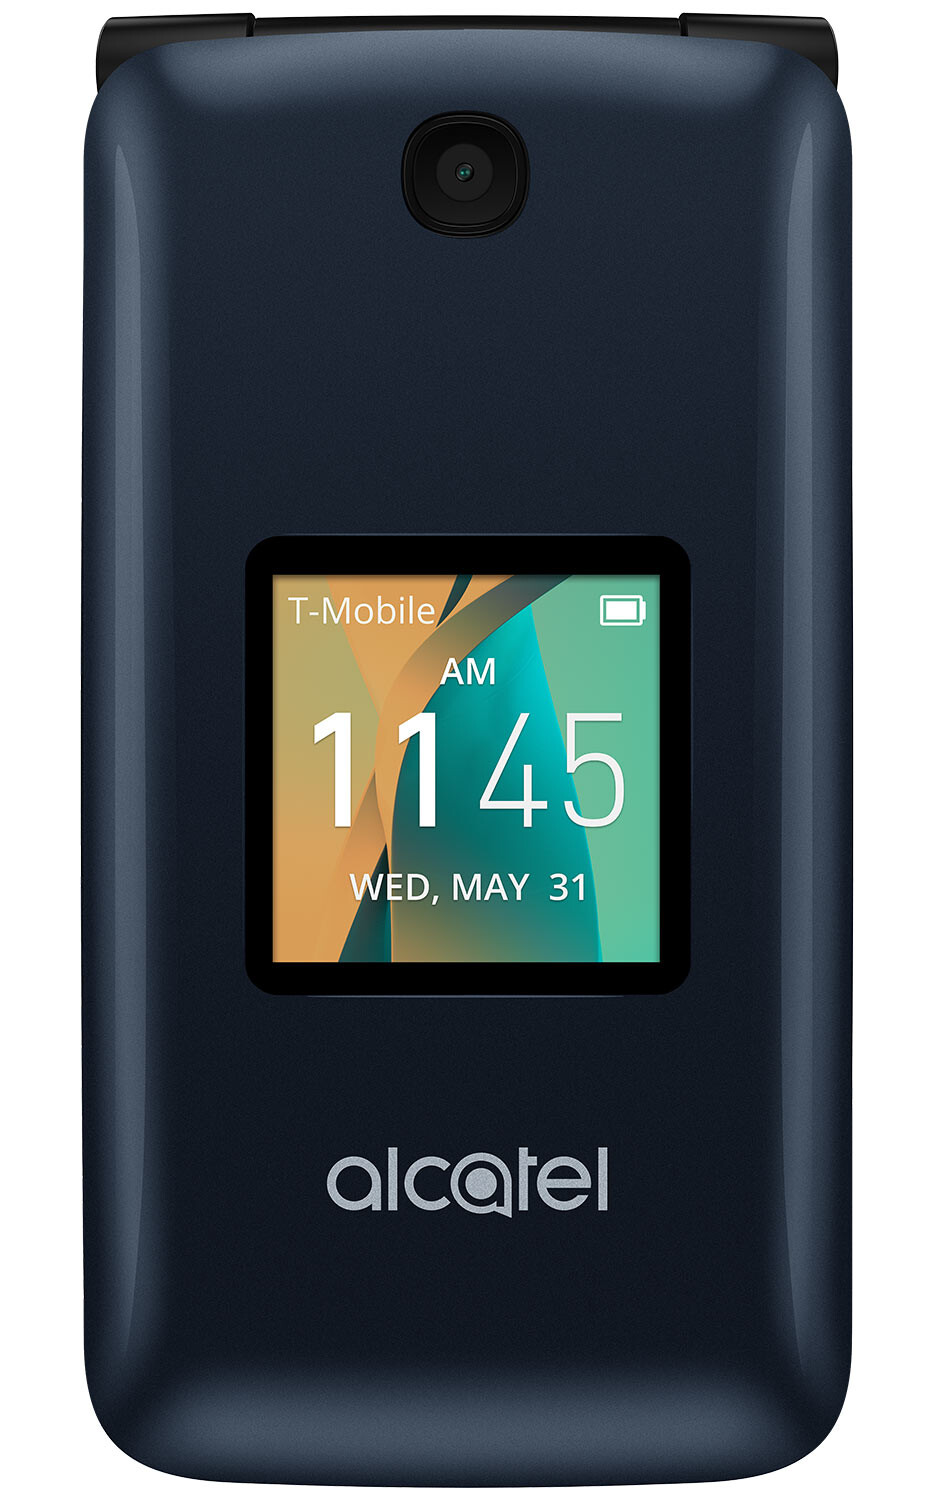 t mobile launches alcatel go flip dumb phone for just 75. Black Bedroom Furniture Sets. Home Design Ideas